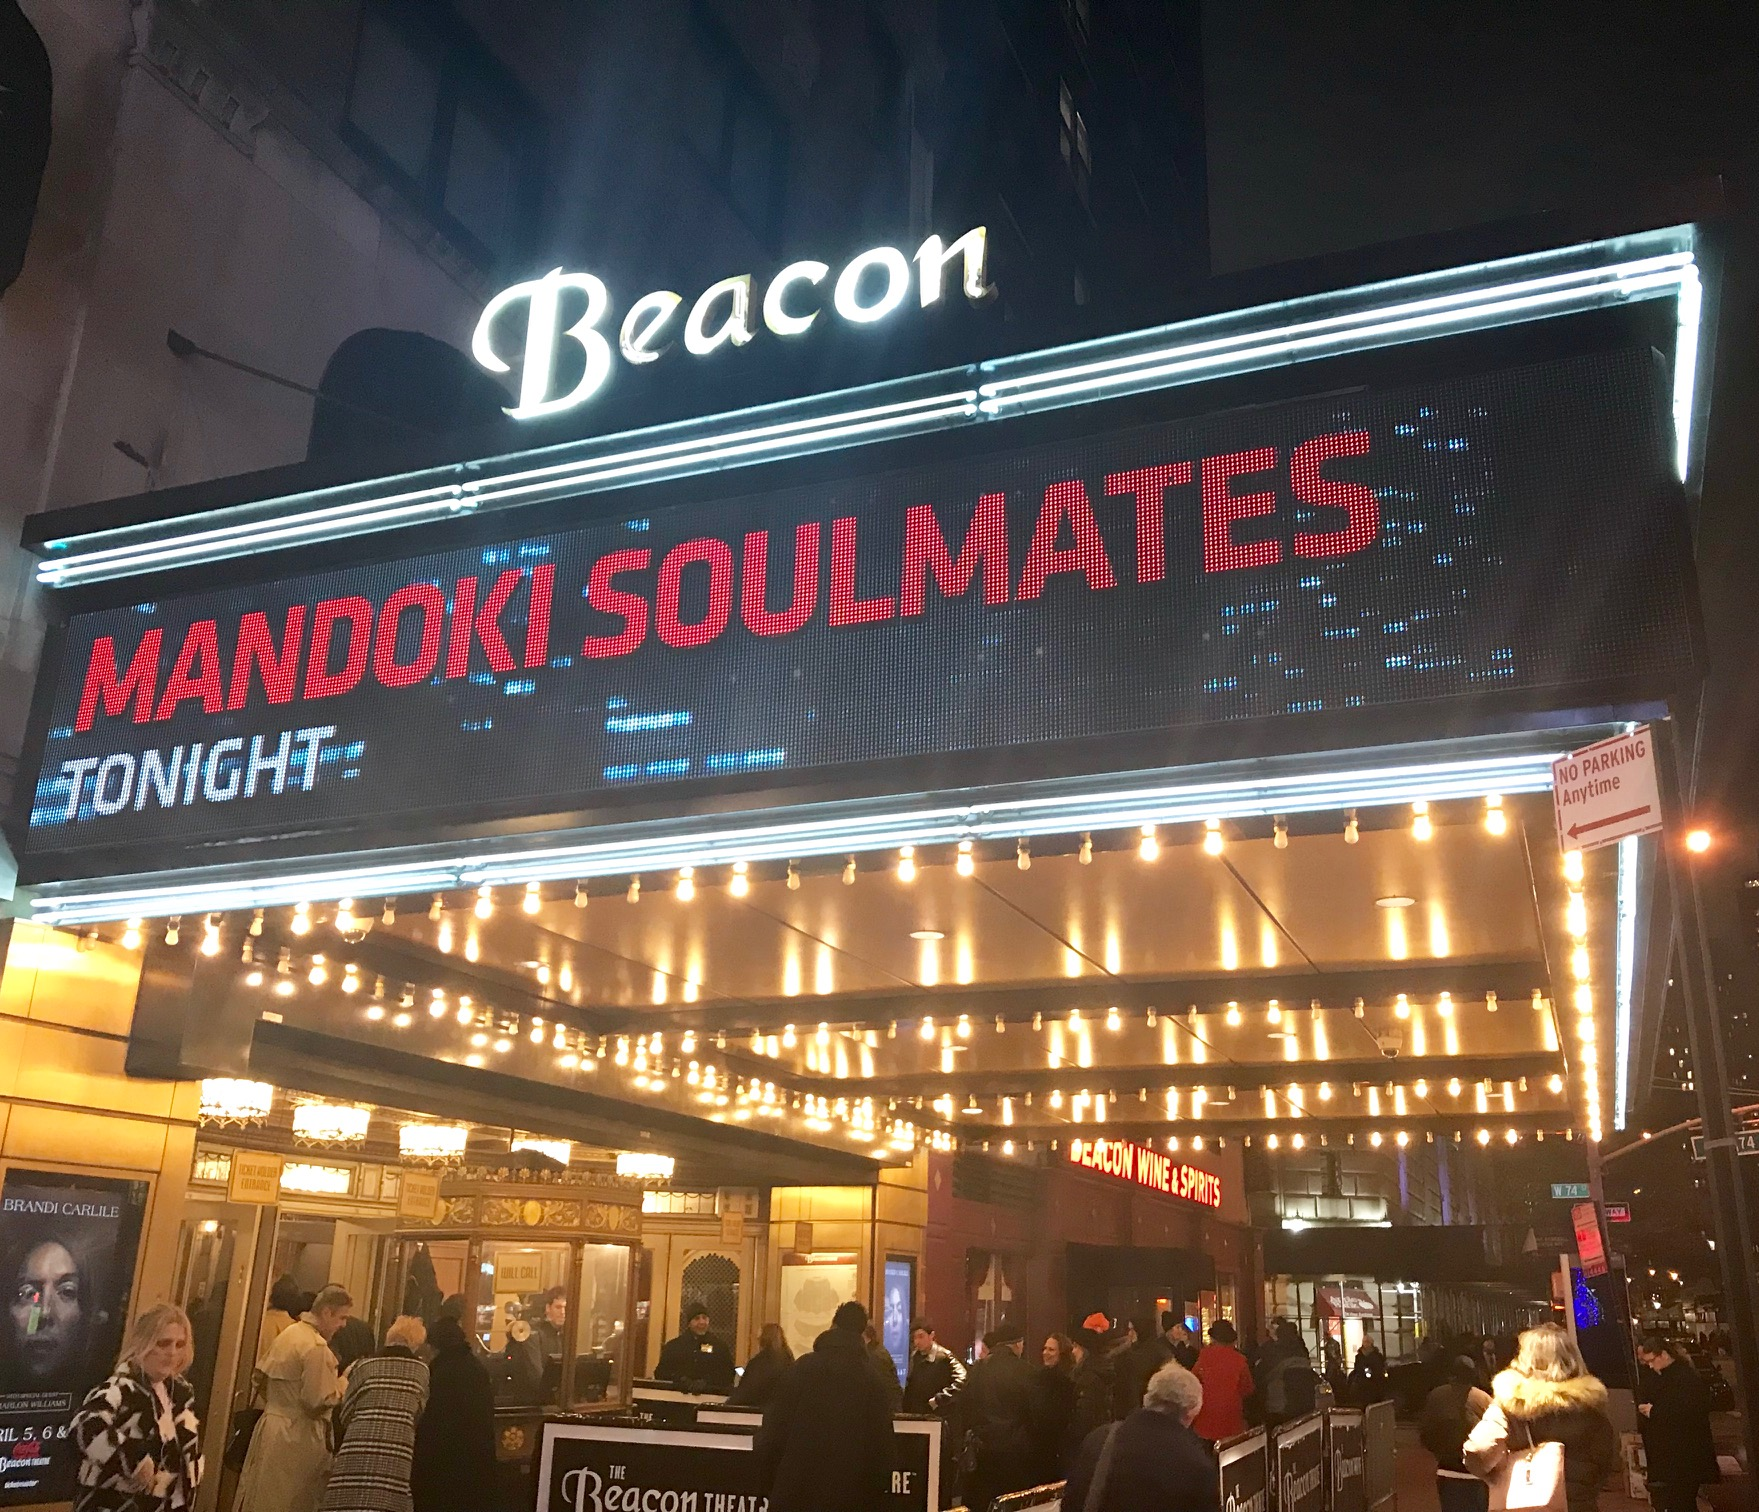 Citizens Of The World Find A Home: The ManDoki Soulmates Live At The Beacon Theatre